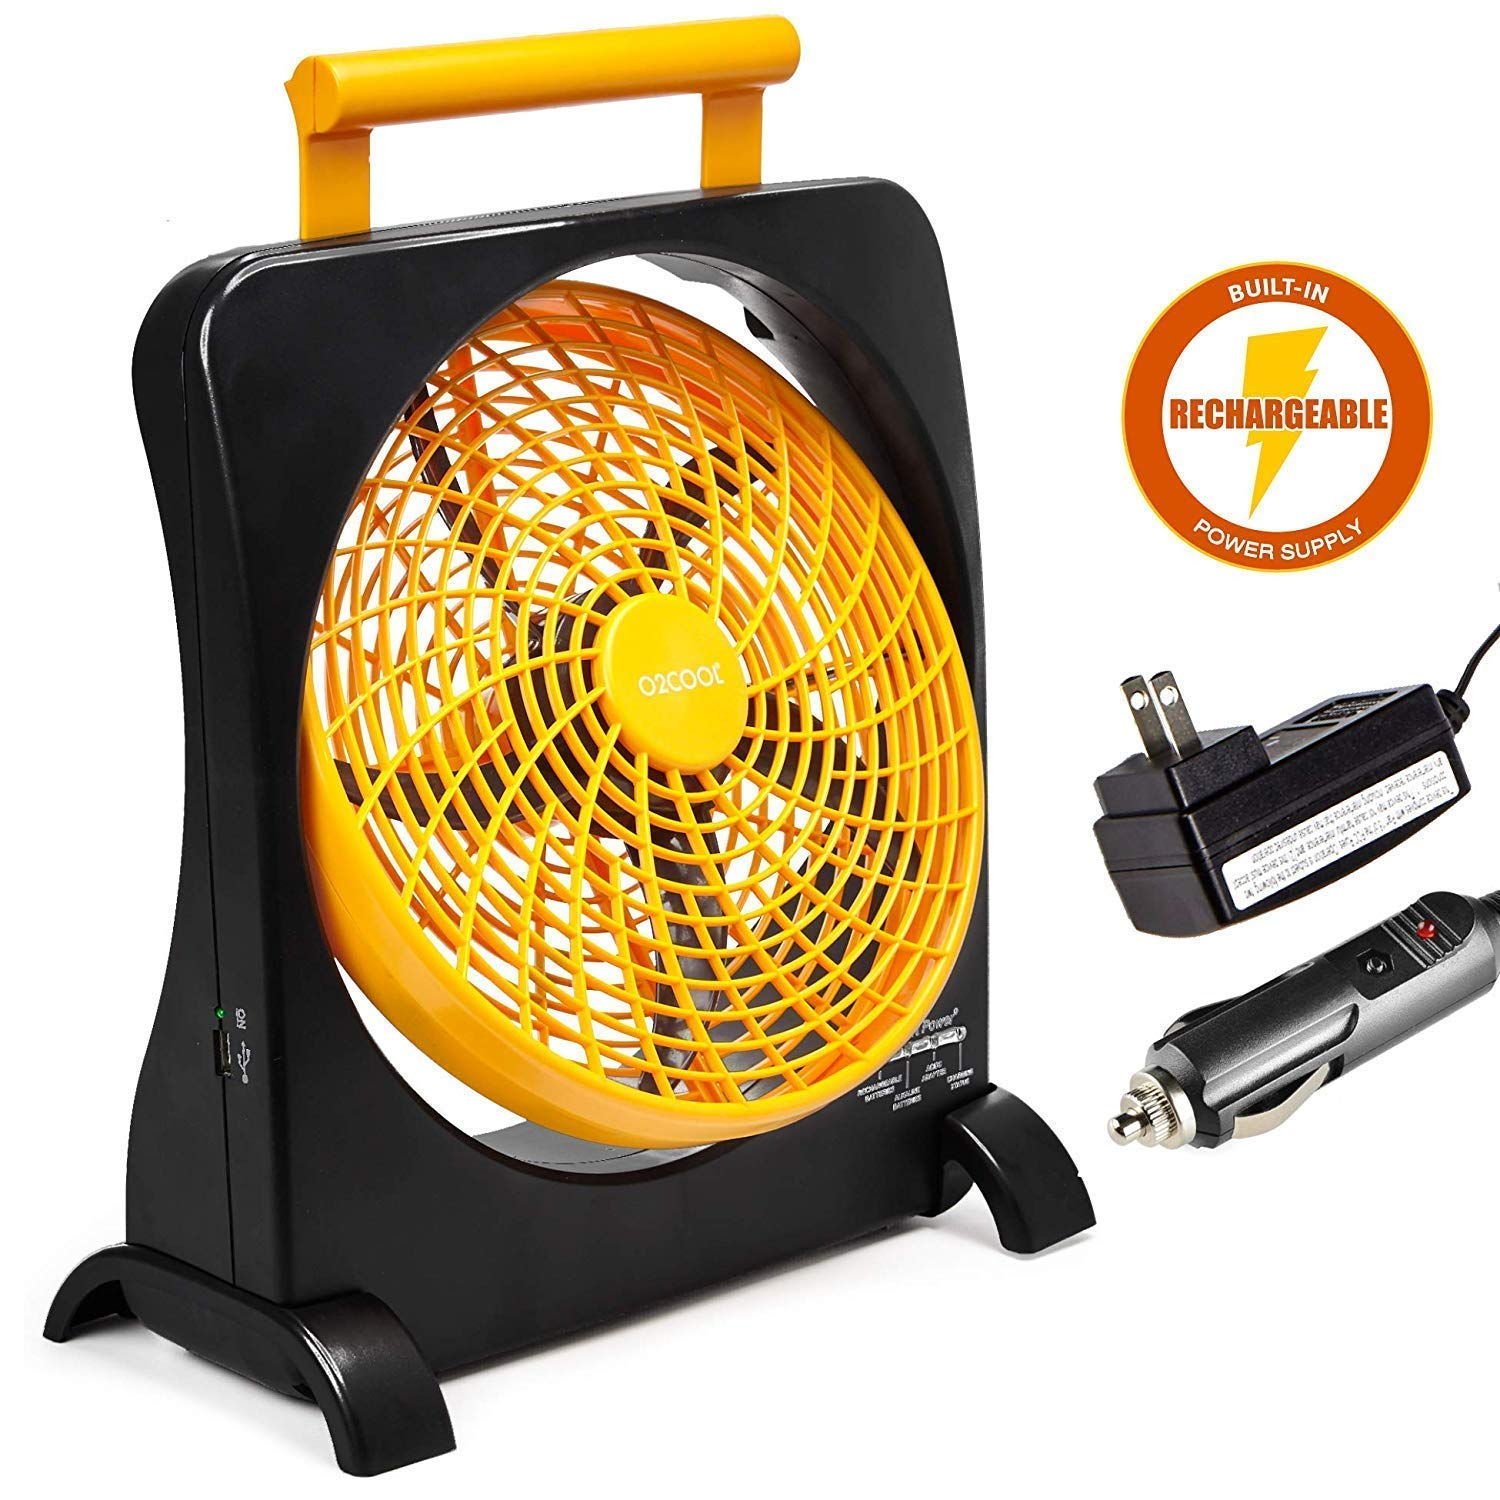 O2COOL 10'' Battery Operated Fan - Portable Smart Power Fan with AC Adapter & USB Charging Port for Emergencies, Camping & Travel Use (Orange) (Renewed) by O2COOL